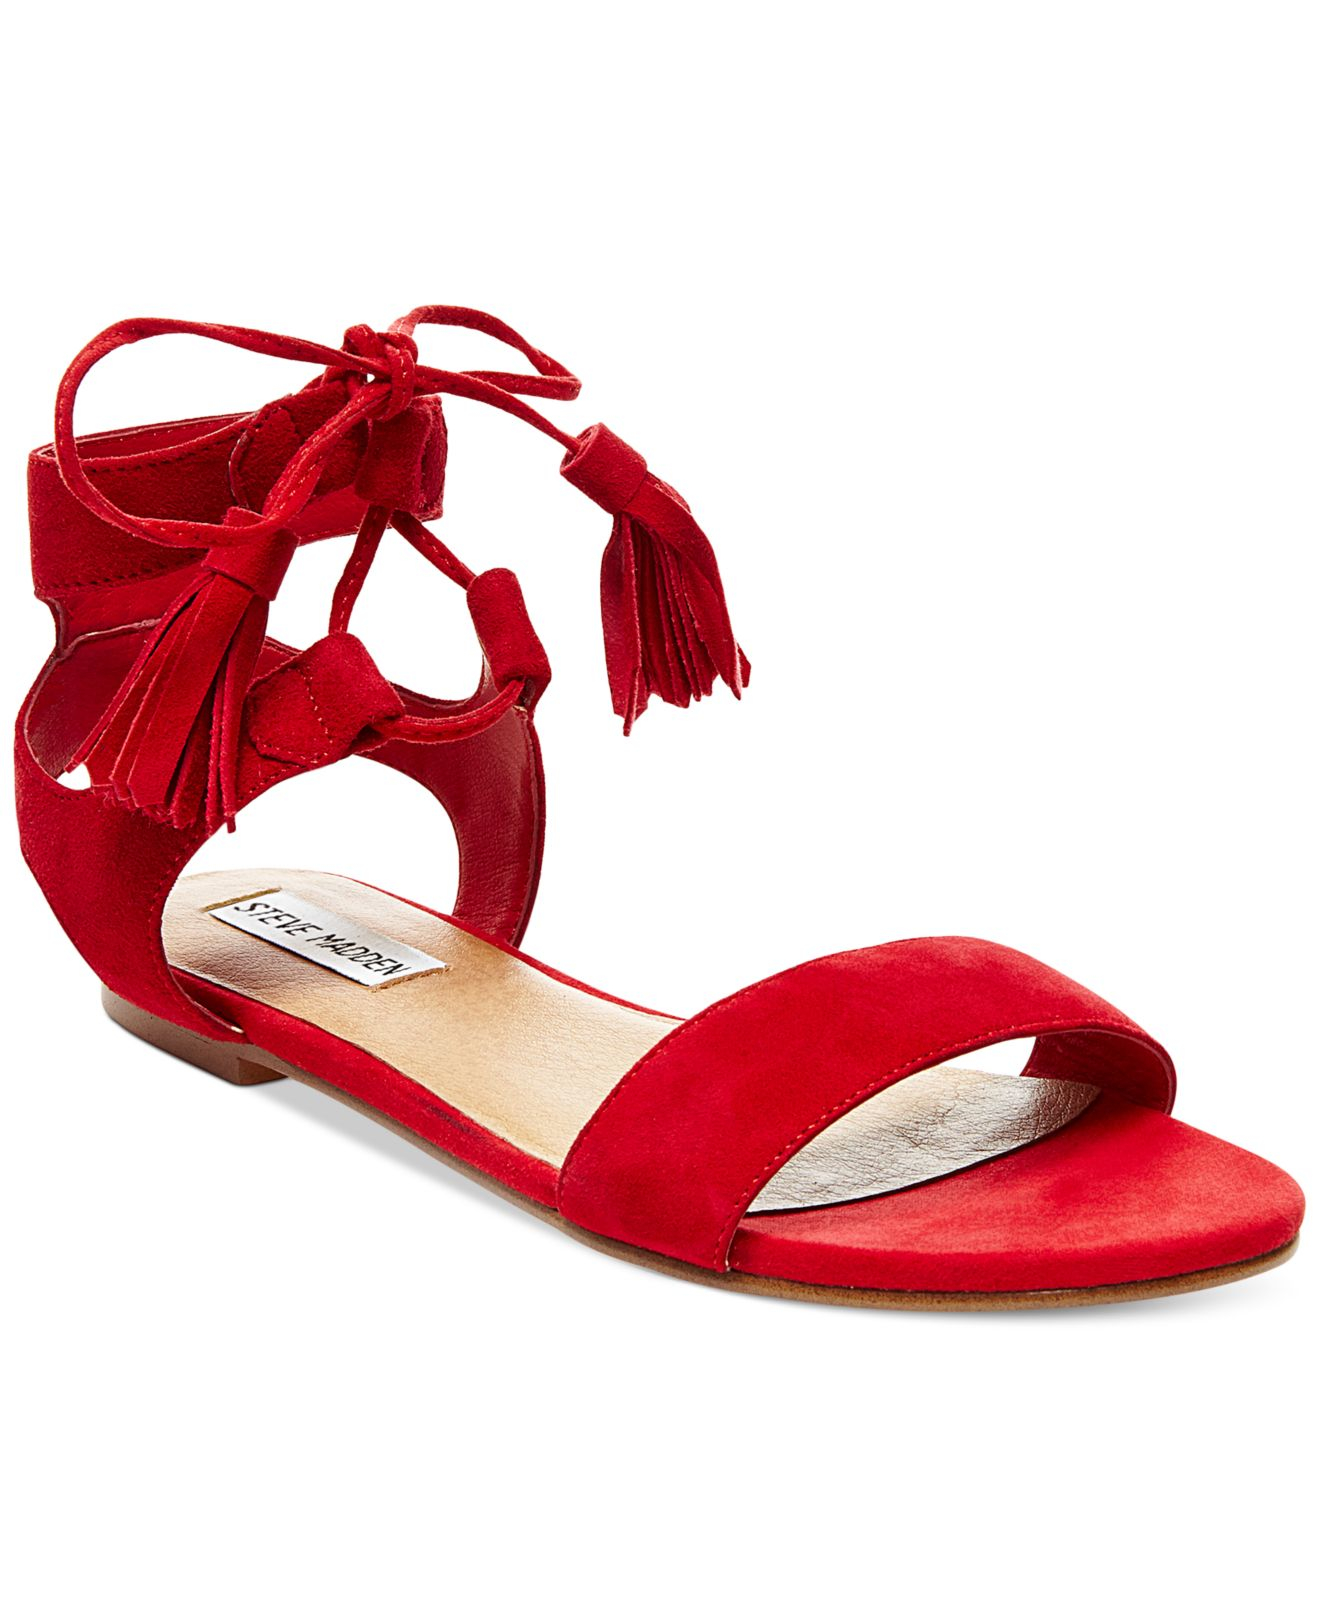 Steve Madden Women S Daryyn Strappy Sandals In Red Lyst